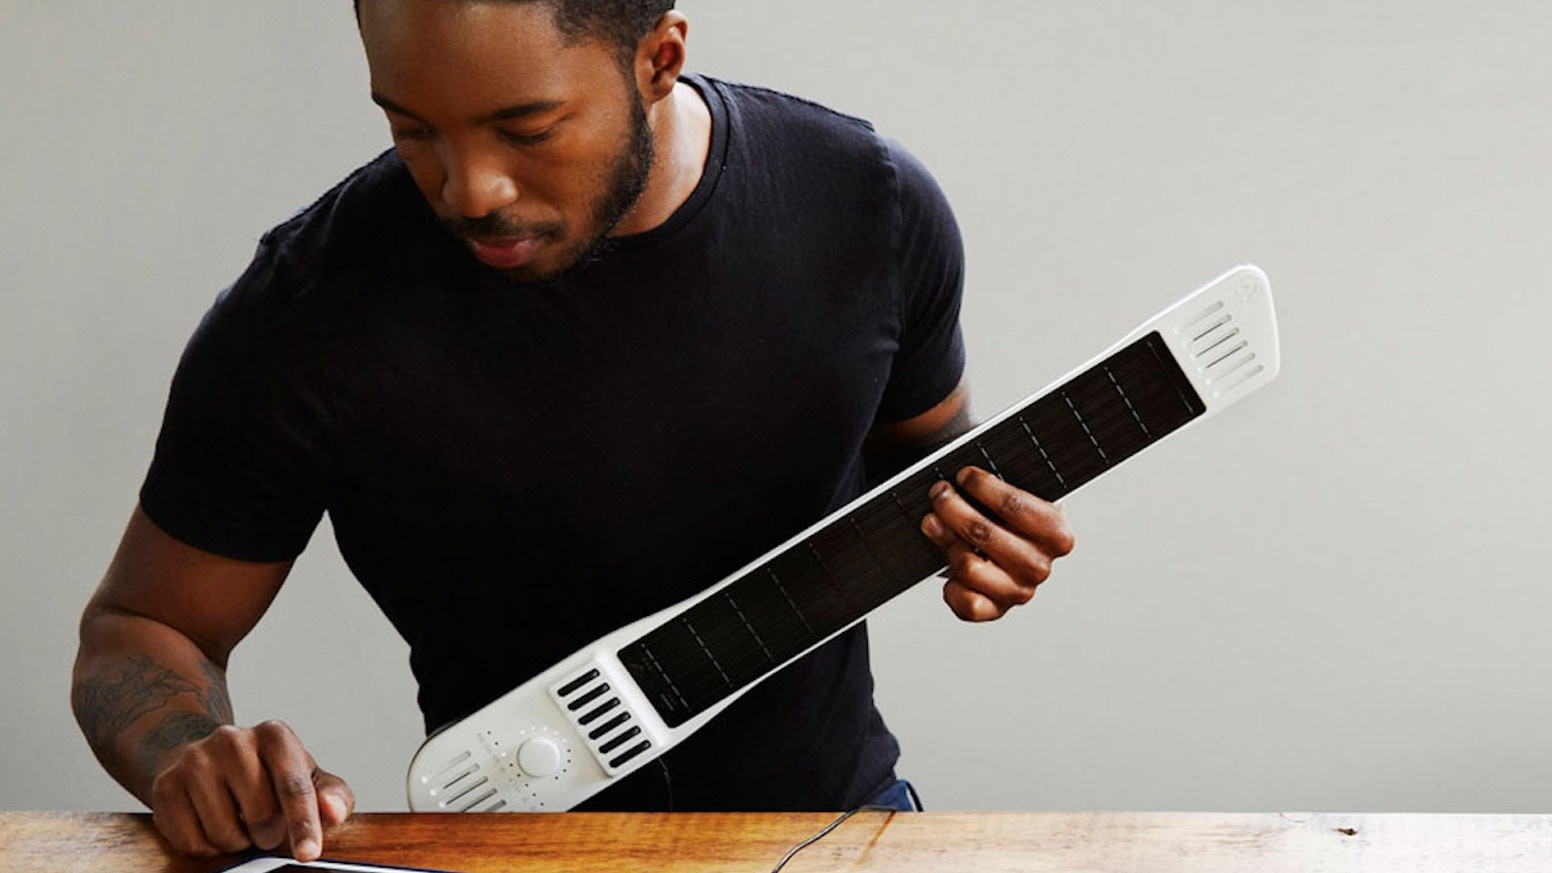 Strum a guitar, bow a violin, tap a piano, loop a beat – on a single instrument. An intuitive way to create music and play any sound.